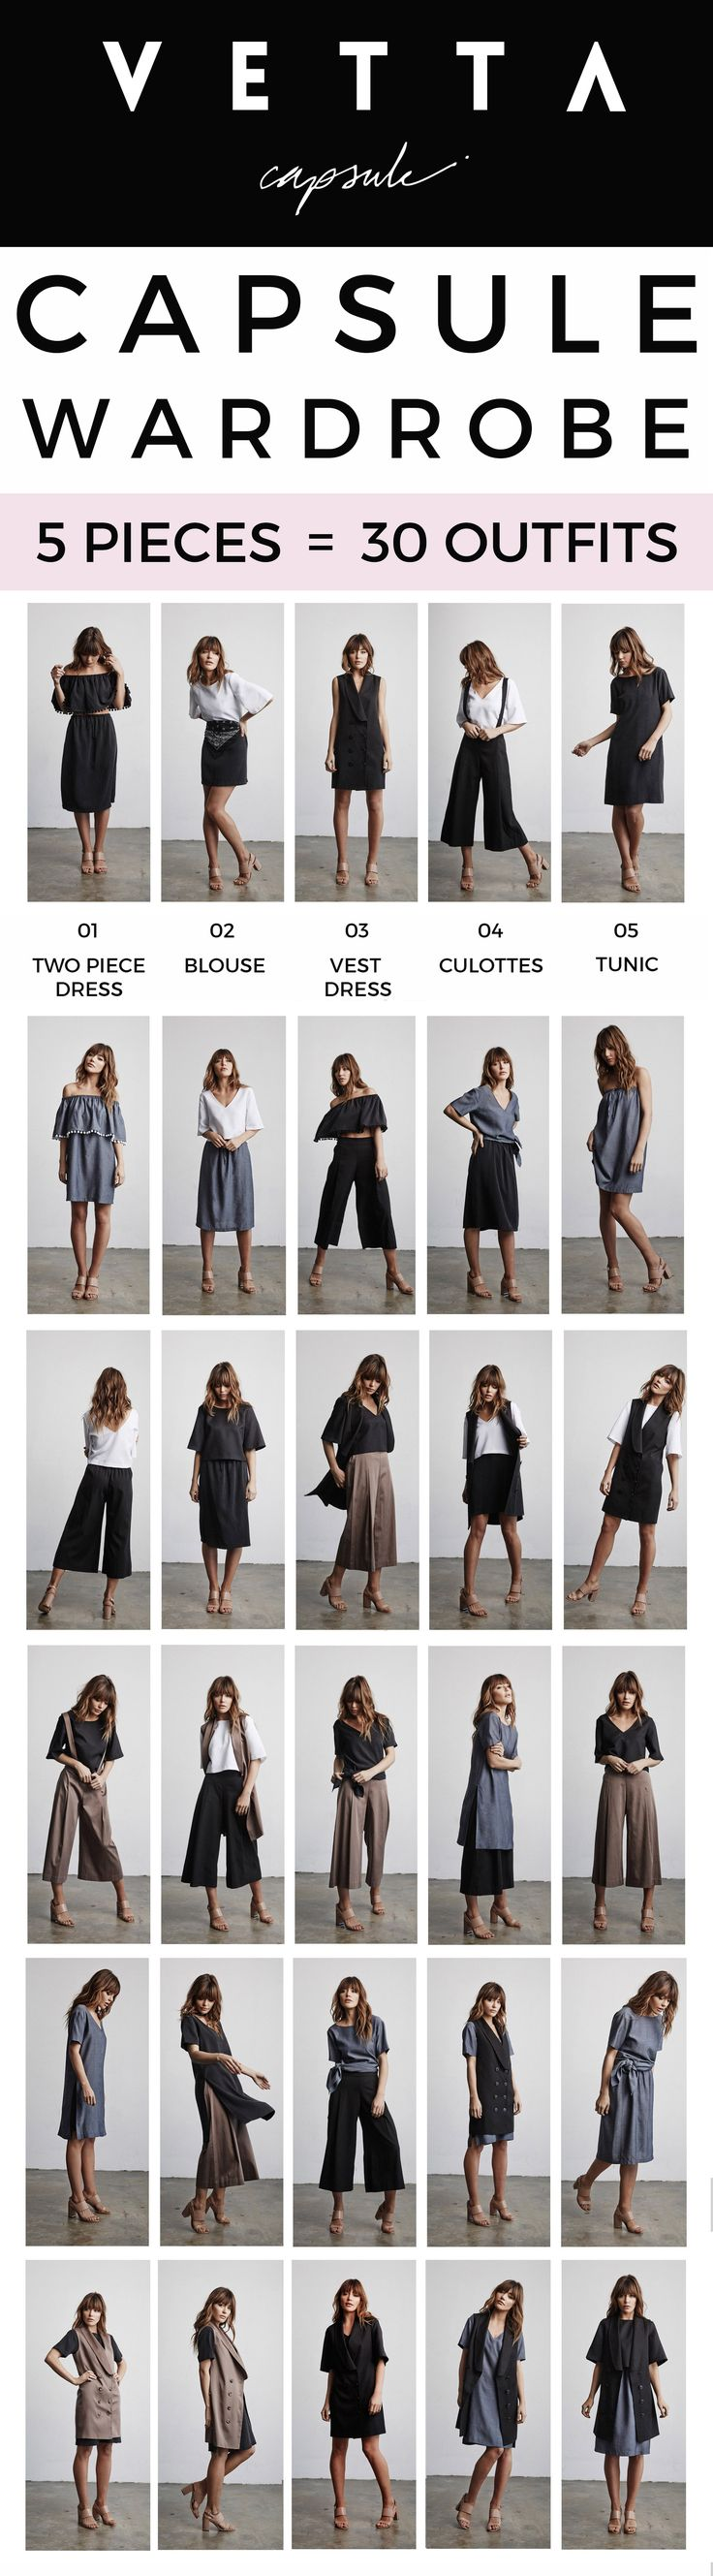 A 5 Piece Capsule Collection That Creates 30 Outfits // A months worth of outfits with only 5 pieces. You can shop the collection here! www.vettacapsule.com #vettacapsule #capsulewardrobe #ss16